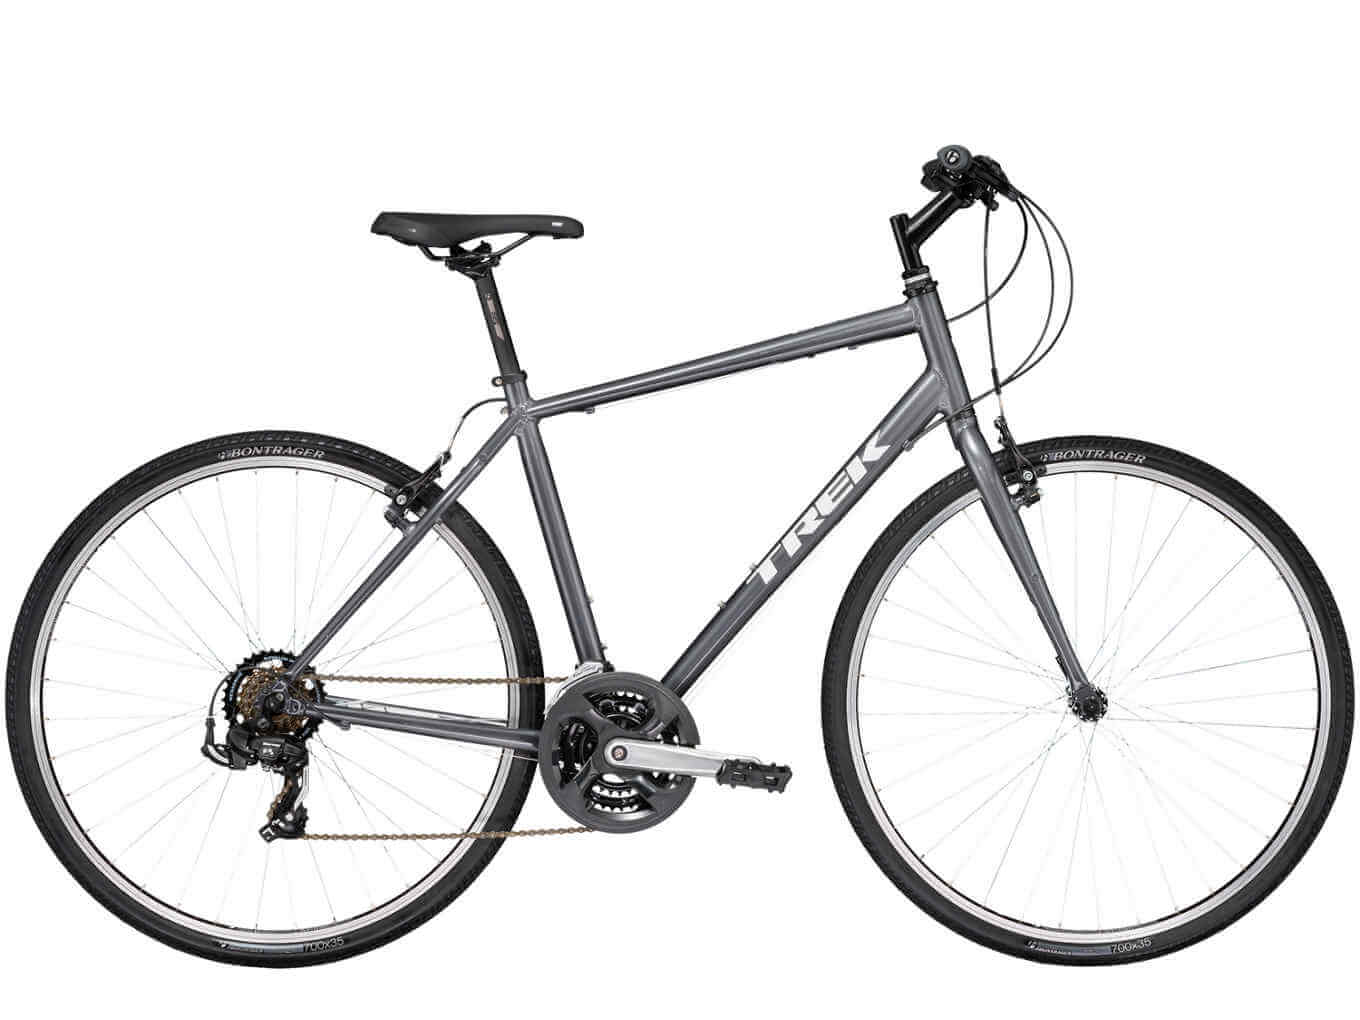 14 Best Hybrid Bicycles Between Rs 15 000 To Rs 30 000